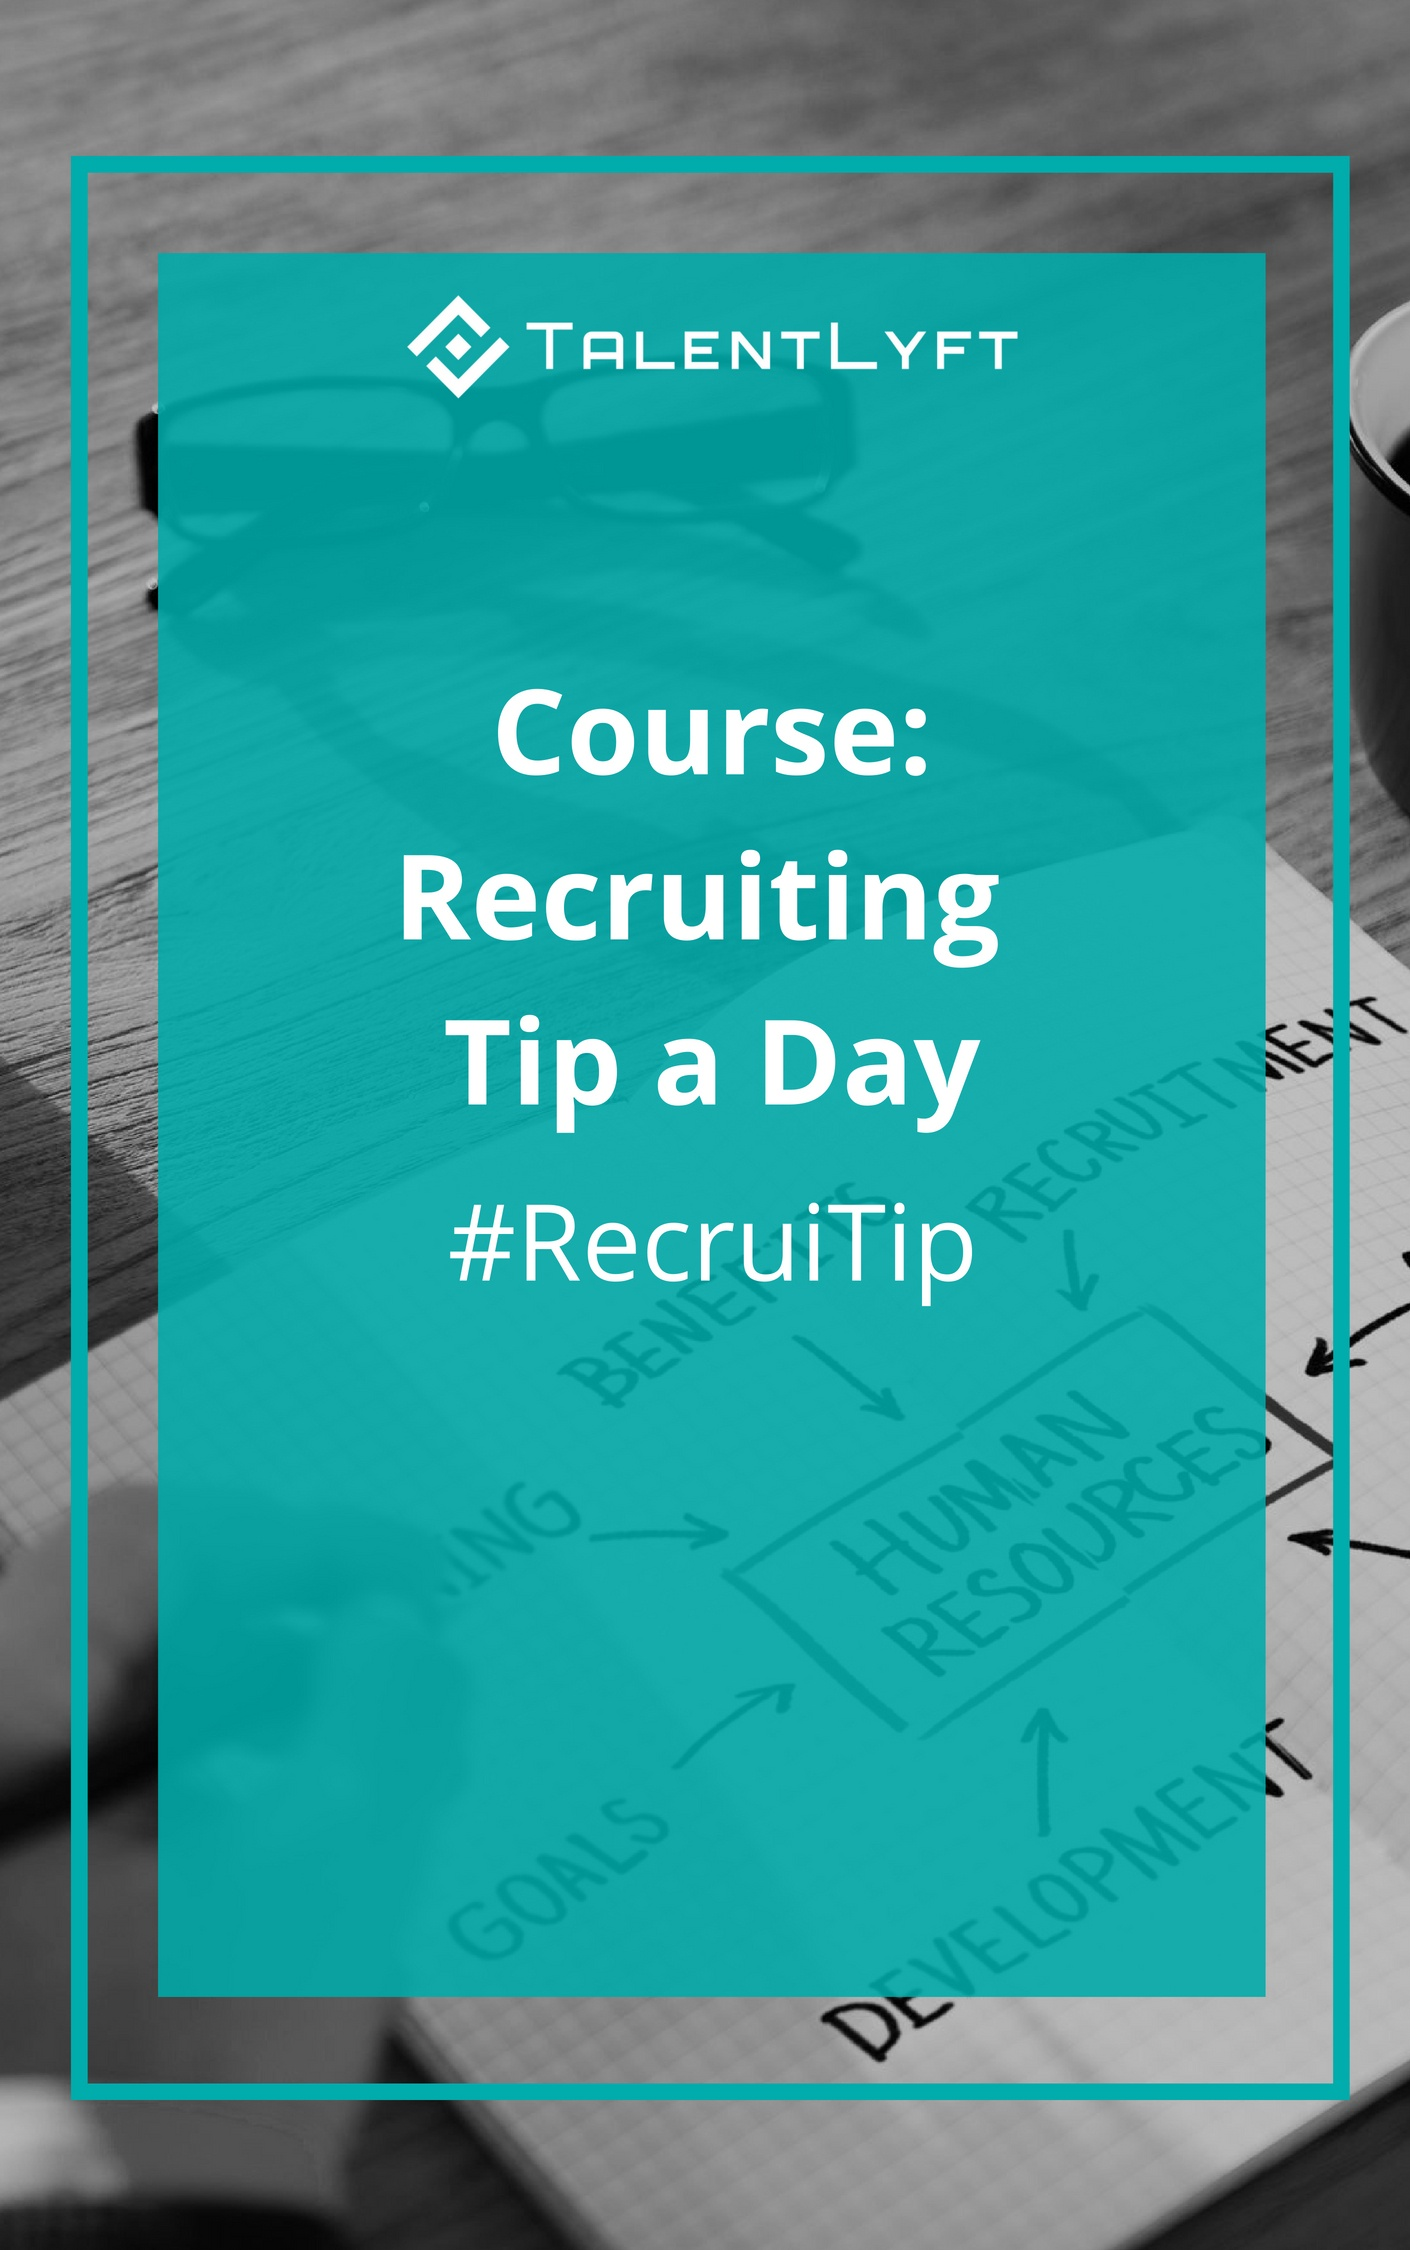 course-recruiting-tip-a-day.jpg